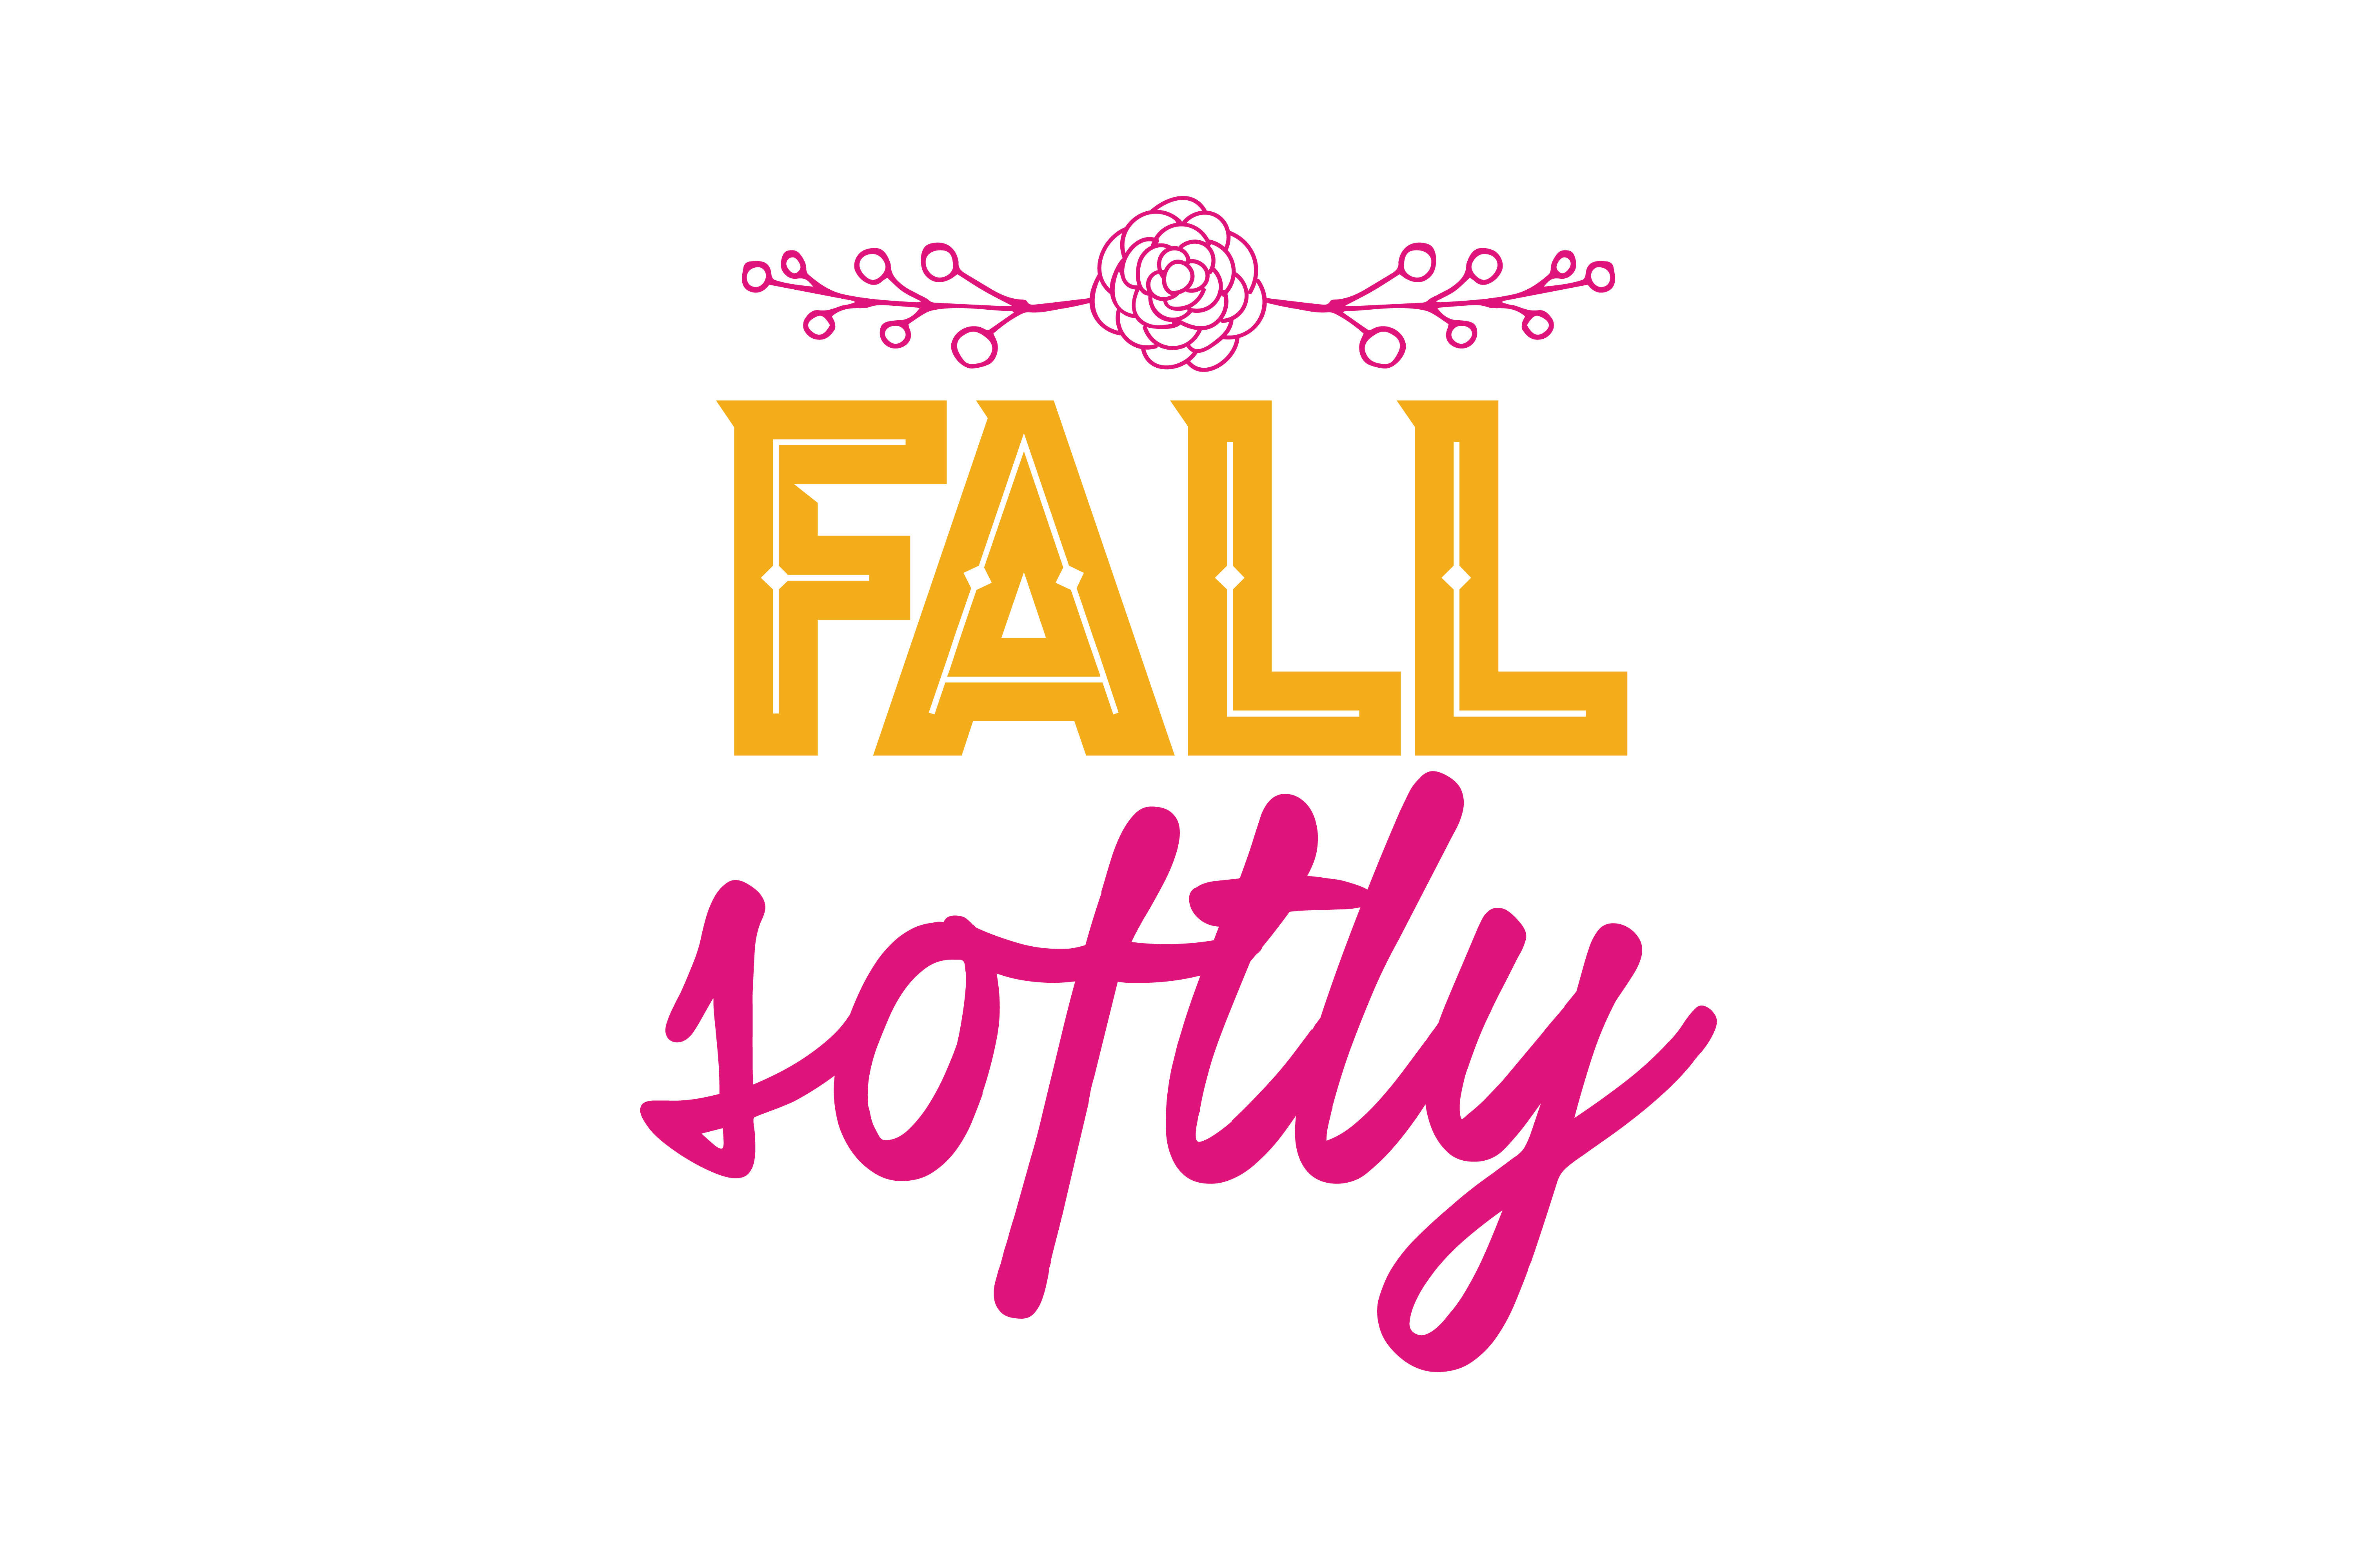 Download Free Fall Softly Quote Svg Cut Graphic By Thelucky Creative Fabrica for Cricut Explore, Silhouette and other cutting machines.